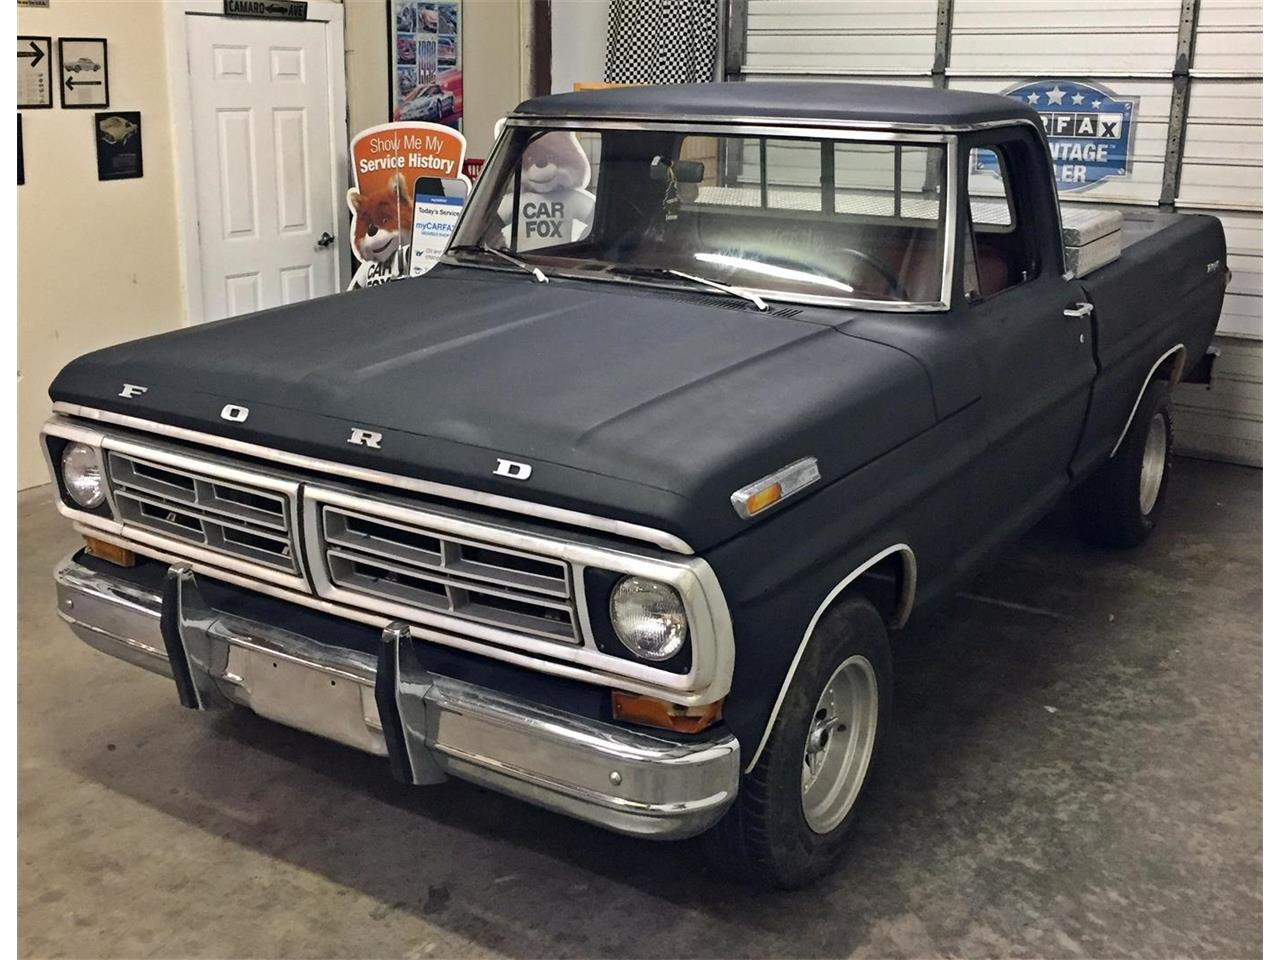 Large picture of 72 f100 jqdh